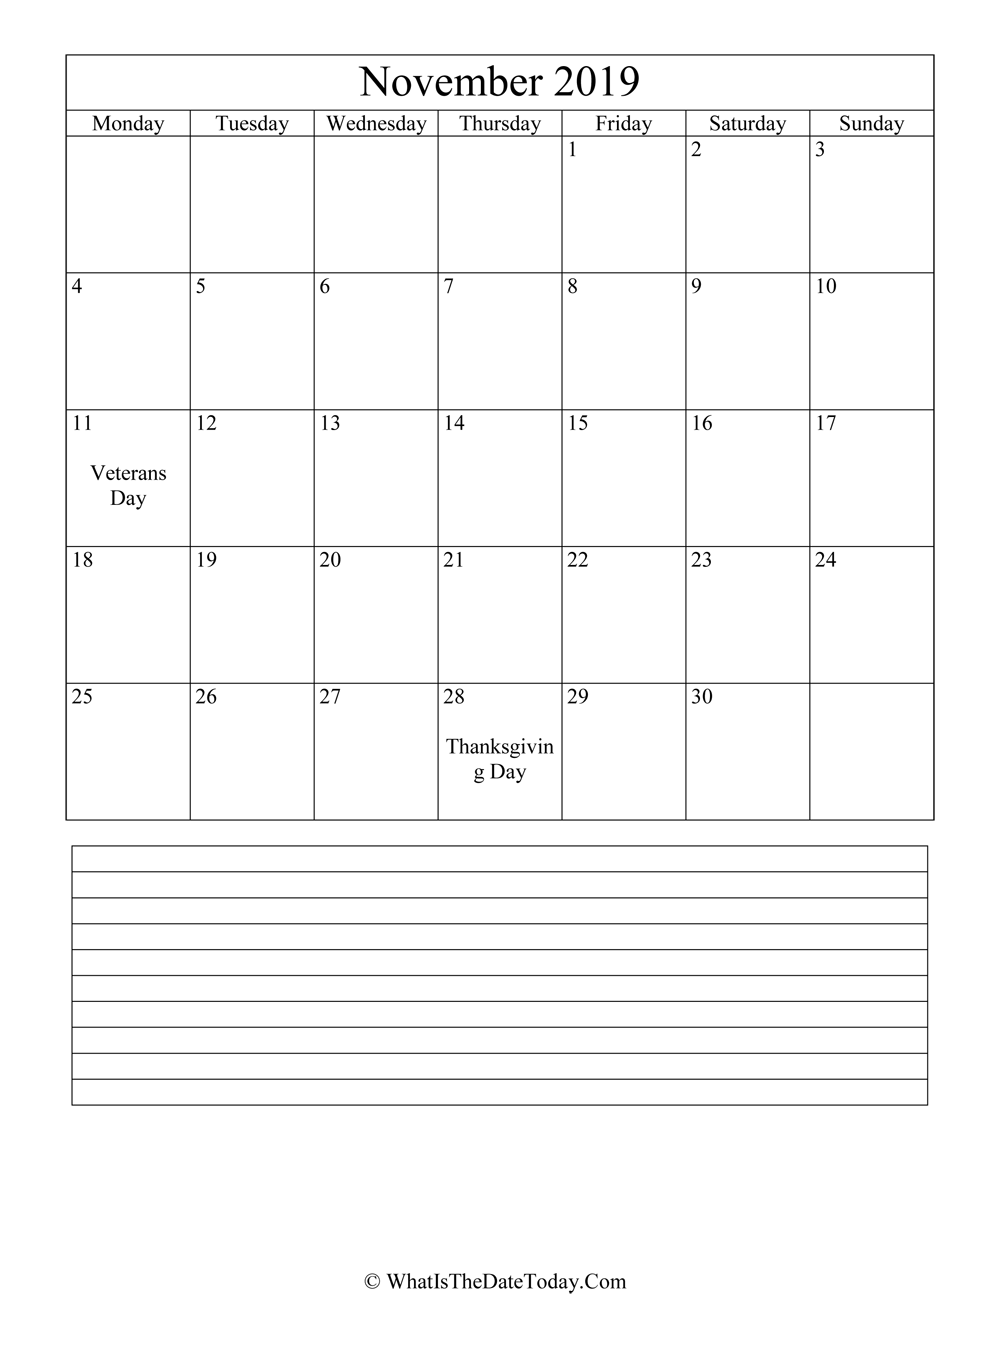 november 2019 calendar editable with notes in vertical layout